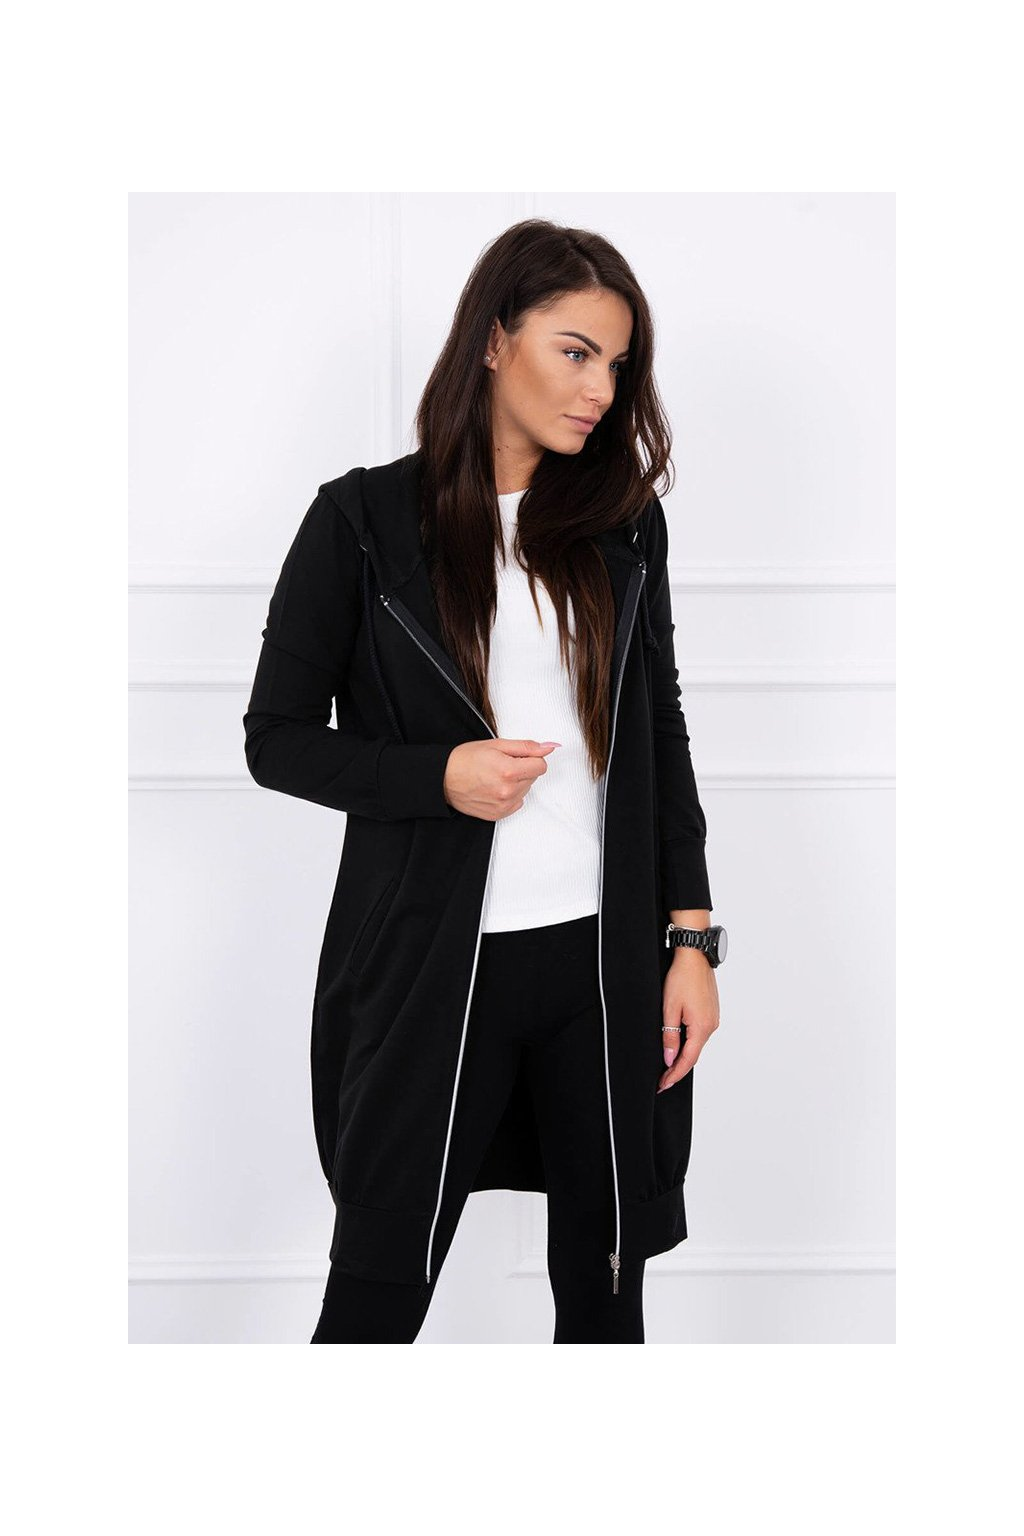 eng pl Hooded dress with a hood black 12829 2